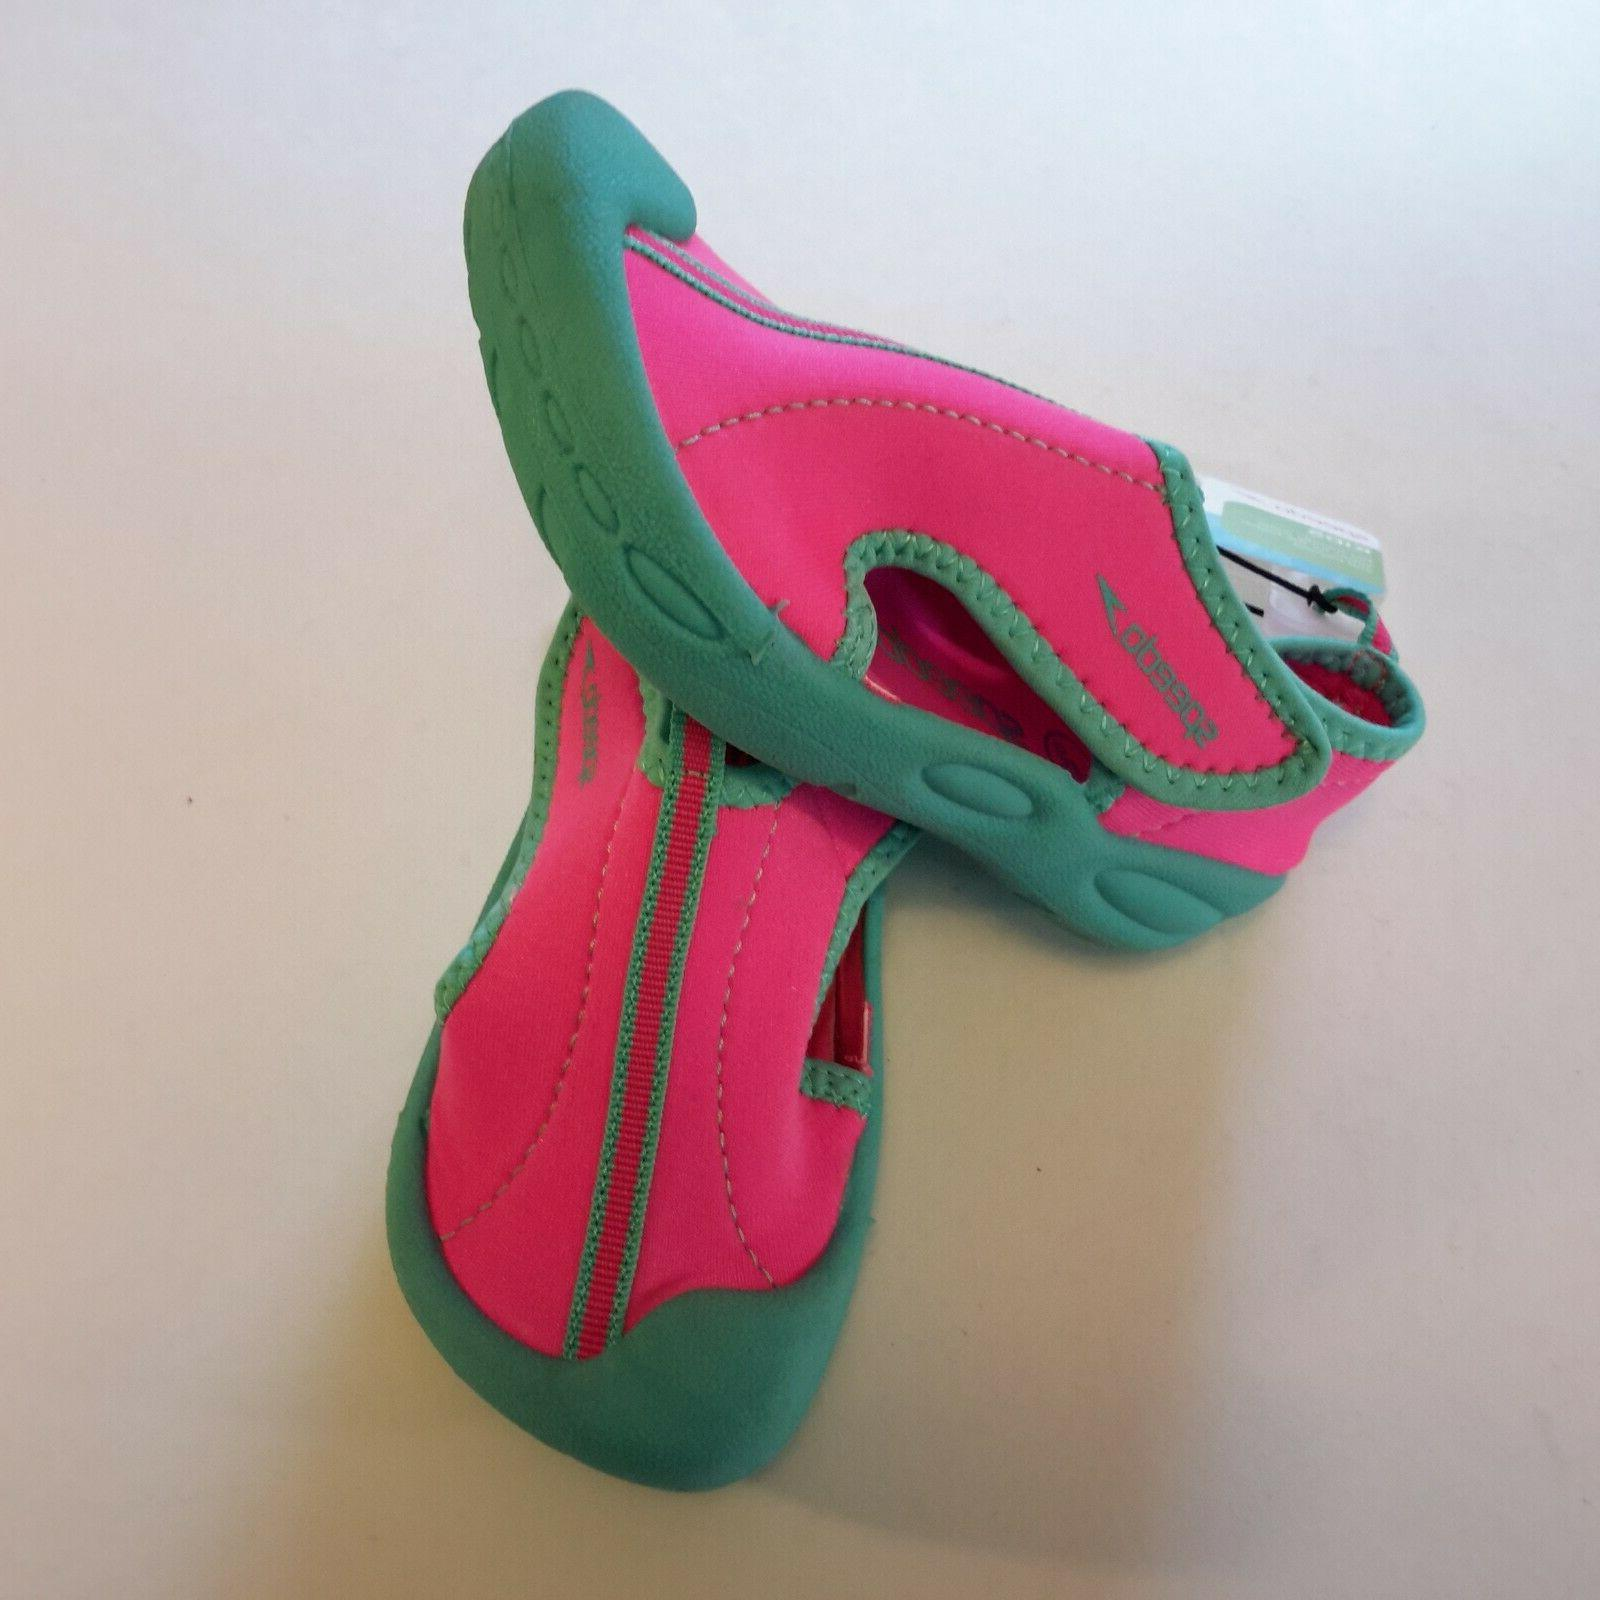 Speedo Girls' Water Shoes - Size L 9/10